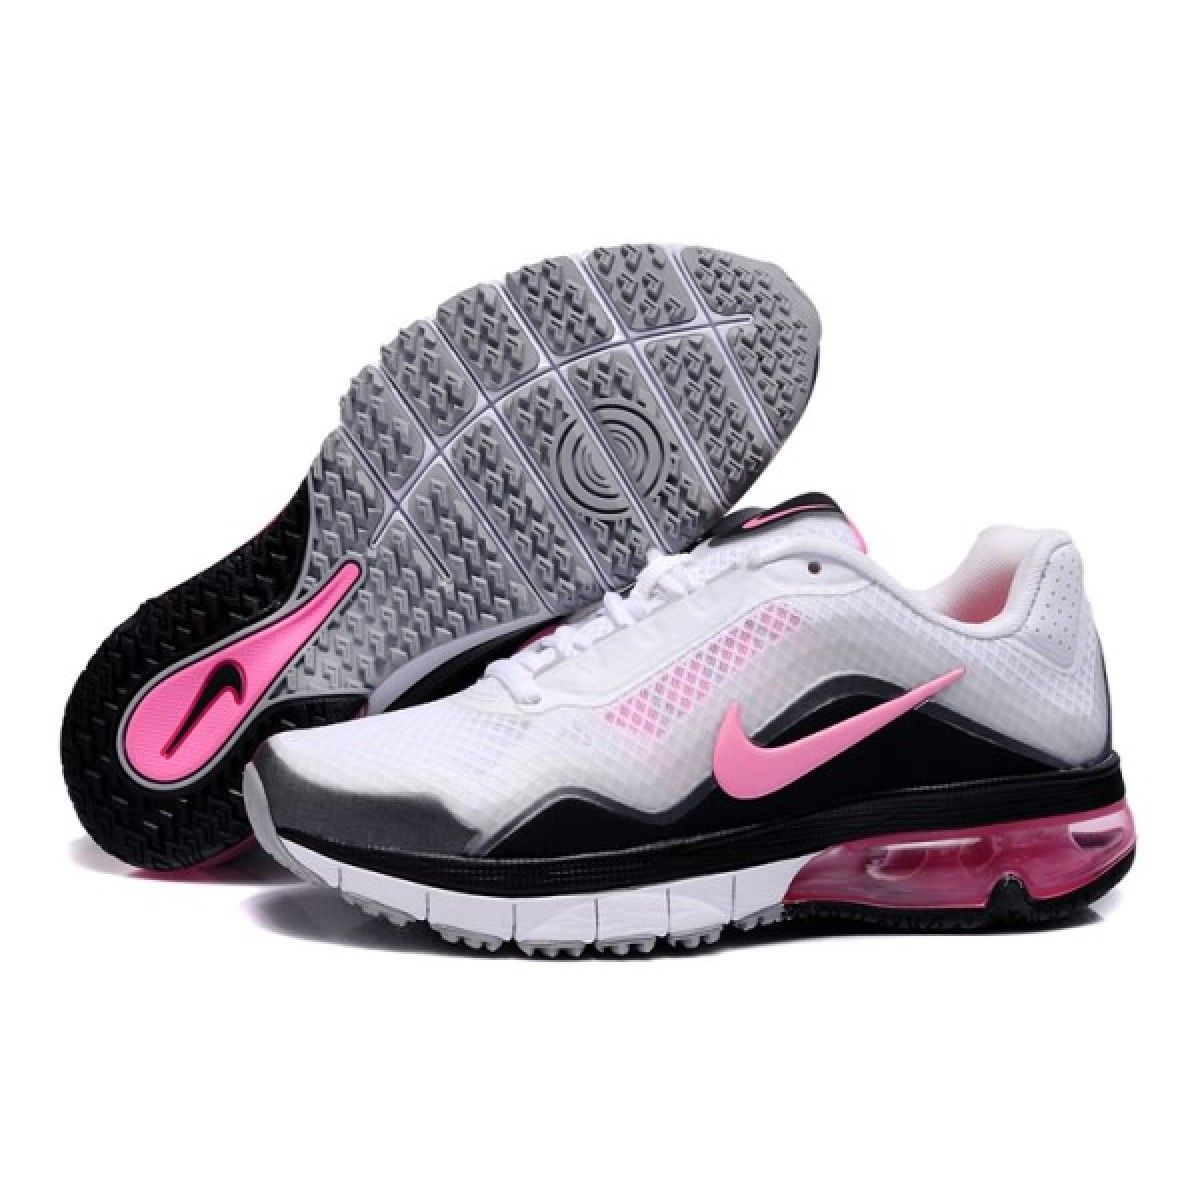 size 40 e4460 7985c Nike Air Max TR 180 Mesh Womens shoes WhitePinkBlack on sale .